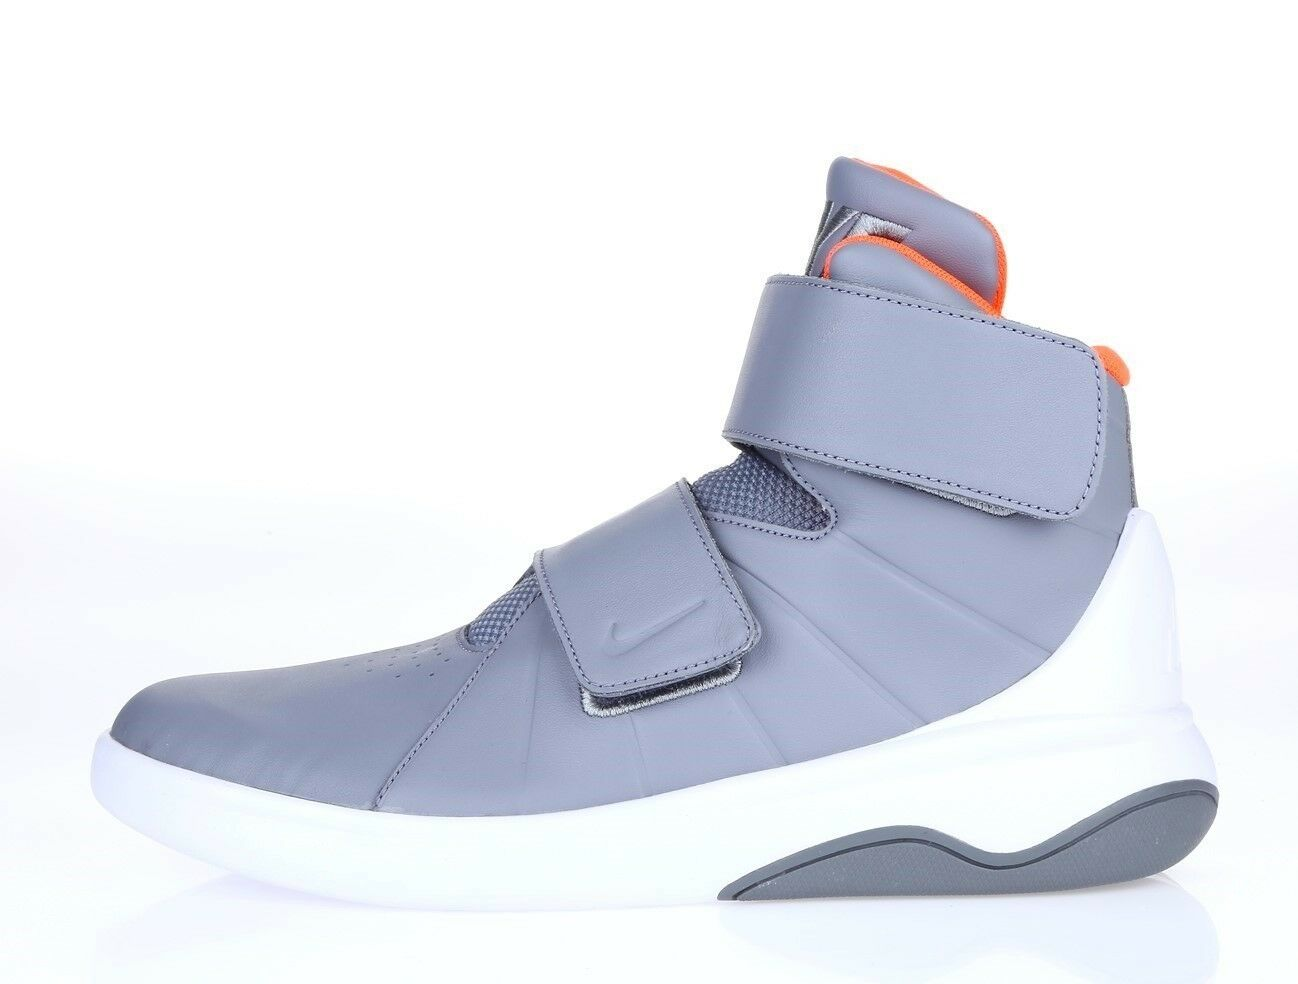 Mens NIKE 226249 gray mesh athletic basketball sneakers Price reduction